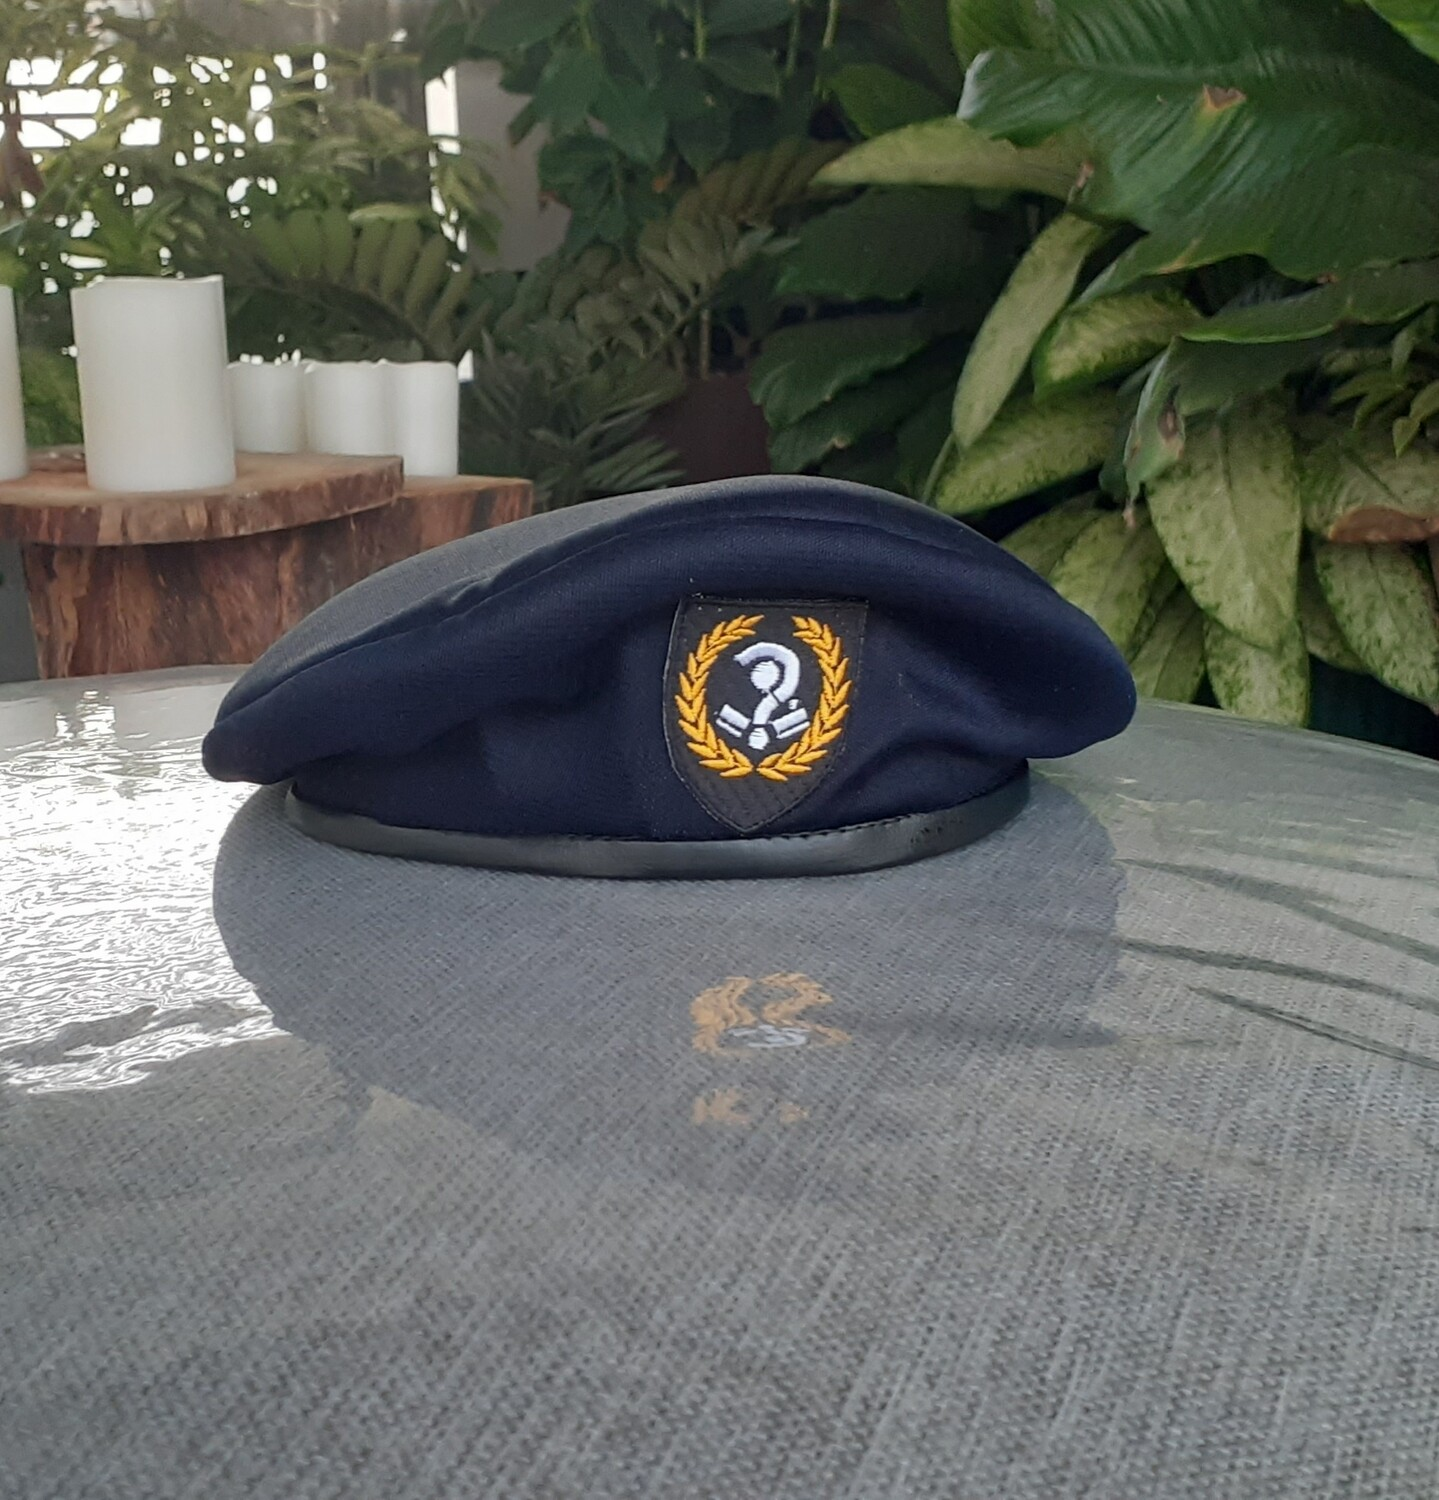 Modern Military Style Beret.